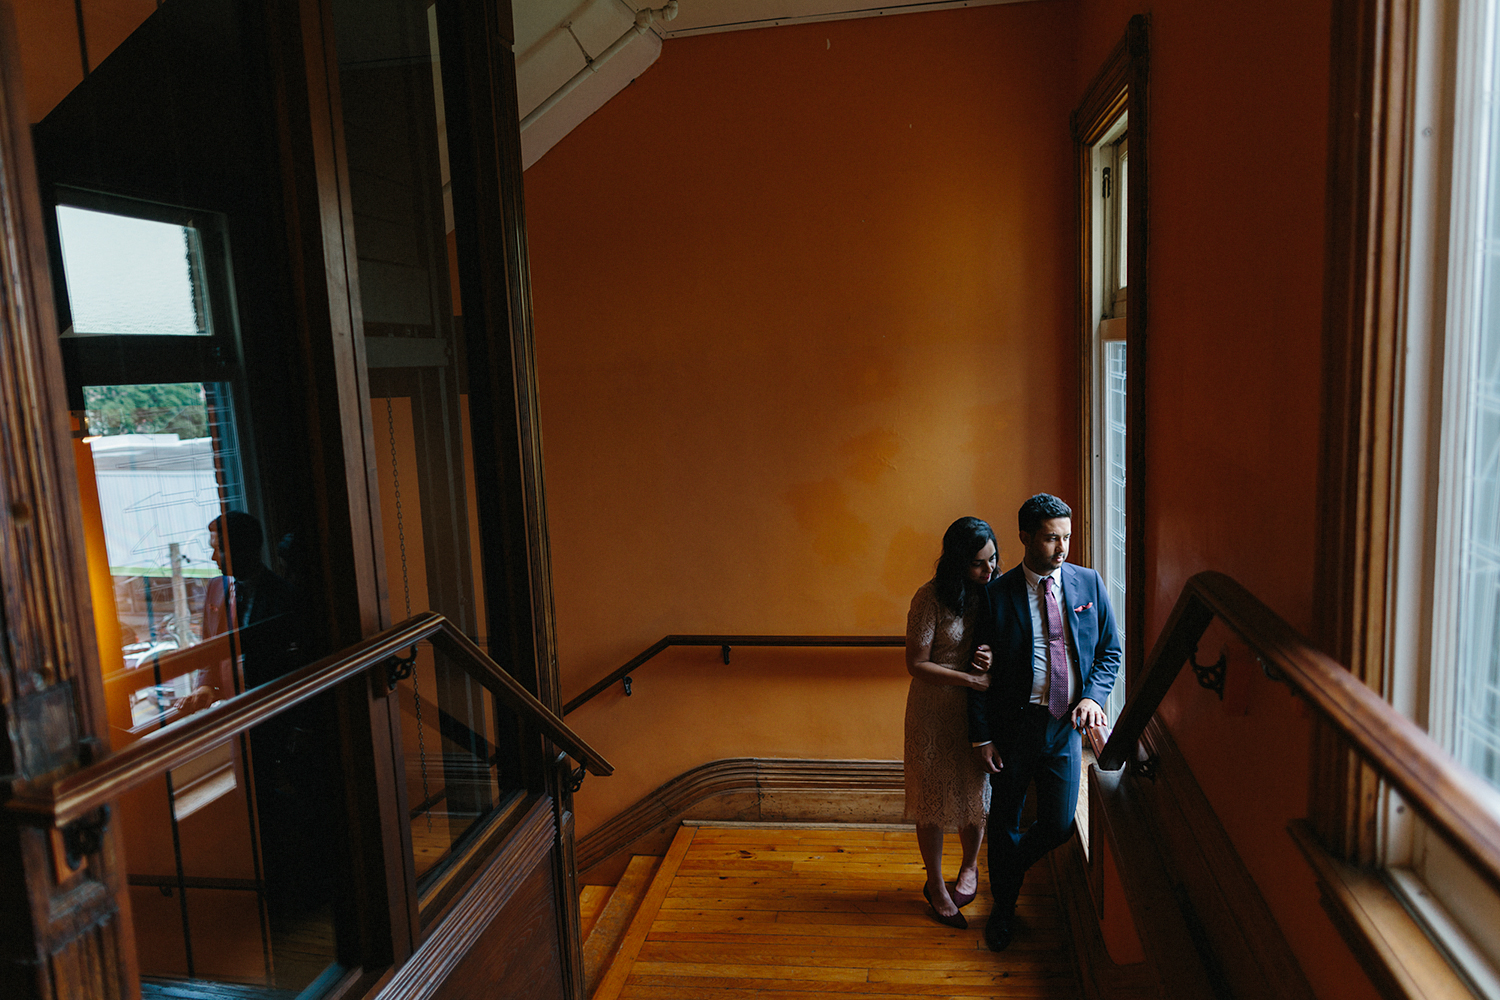 Best-Wedding-Photographers-in-Toronto-Downtown-Urban-Gladstone-Hotel-Venue-Inspiration-Top-Venues-in-Toronto-boutique-hotel-candid-documentary-bride-and-groom-portraits-stairs-romantic-moody-editorial-magazine.jpg